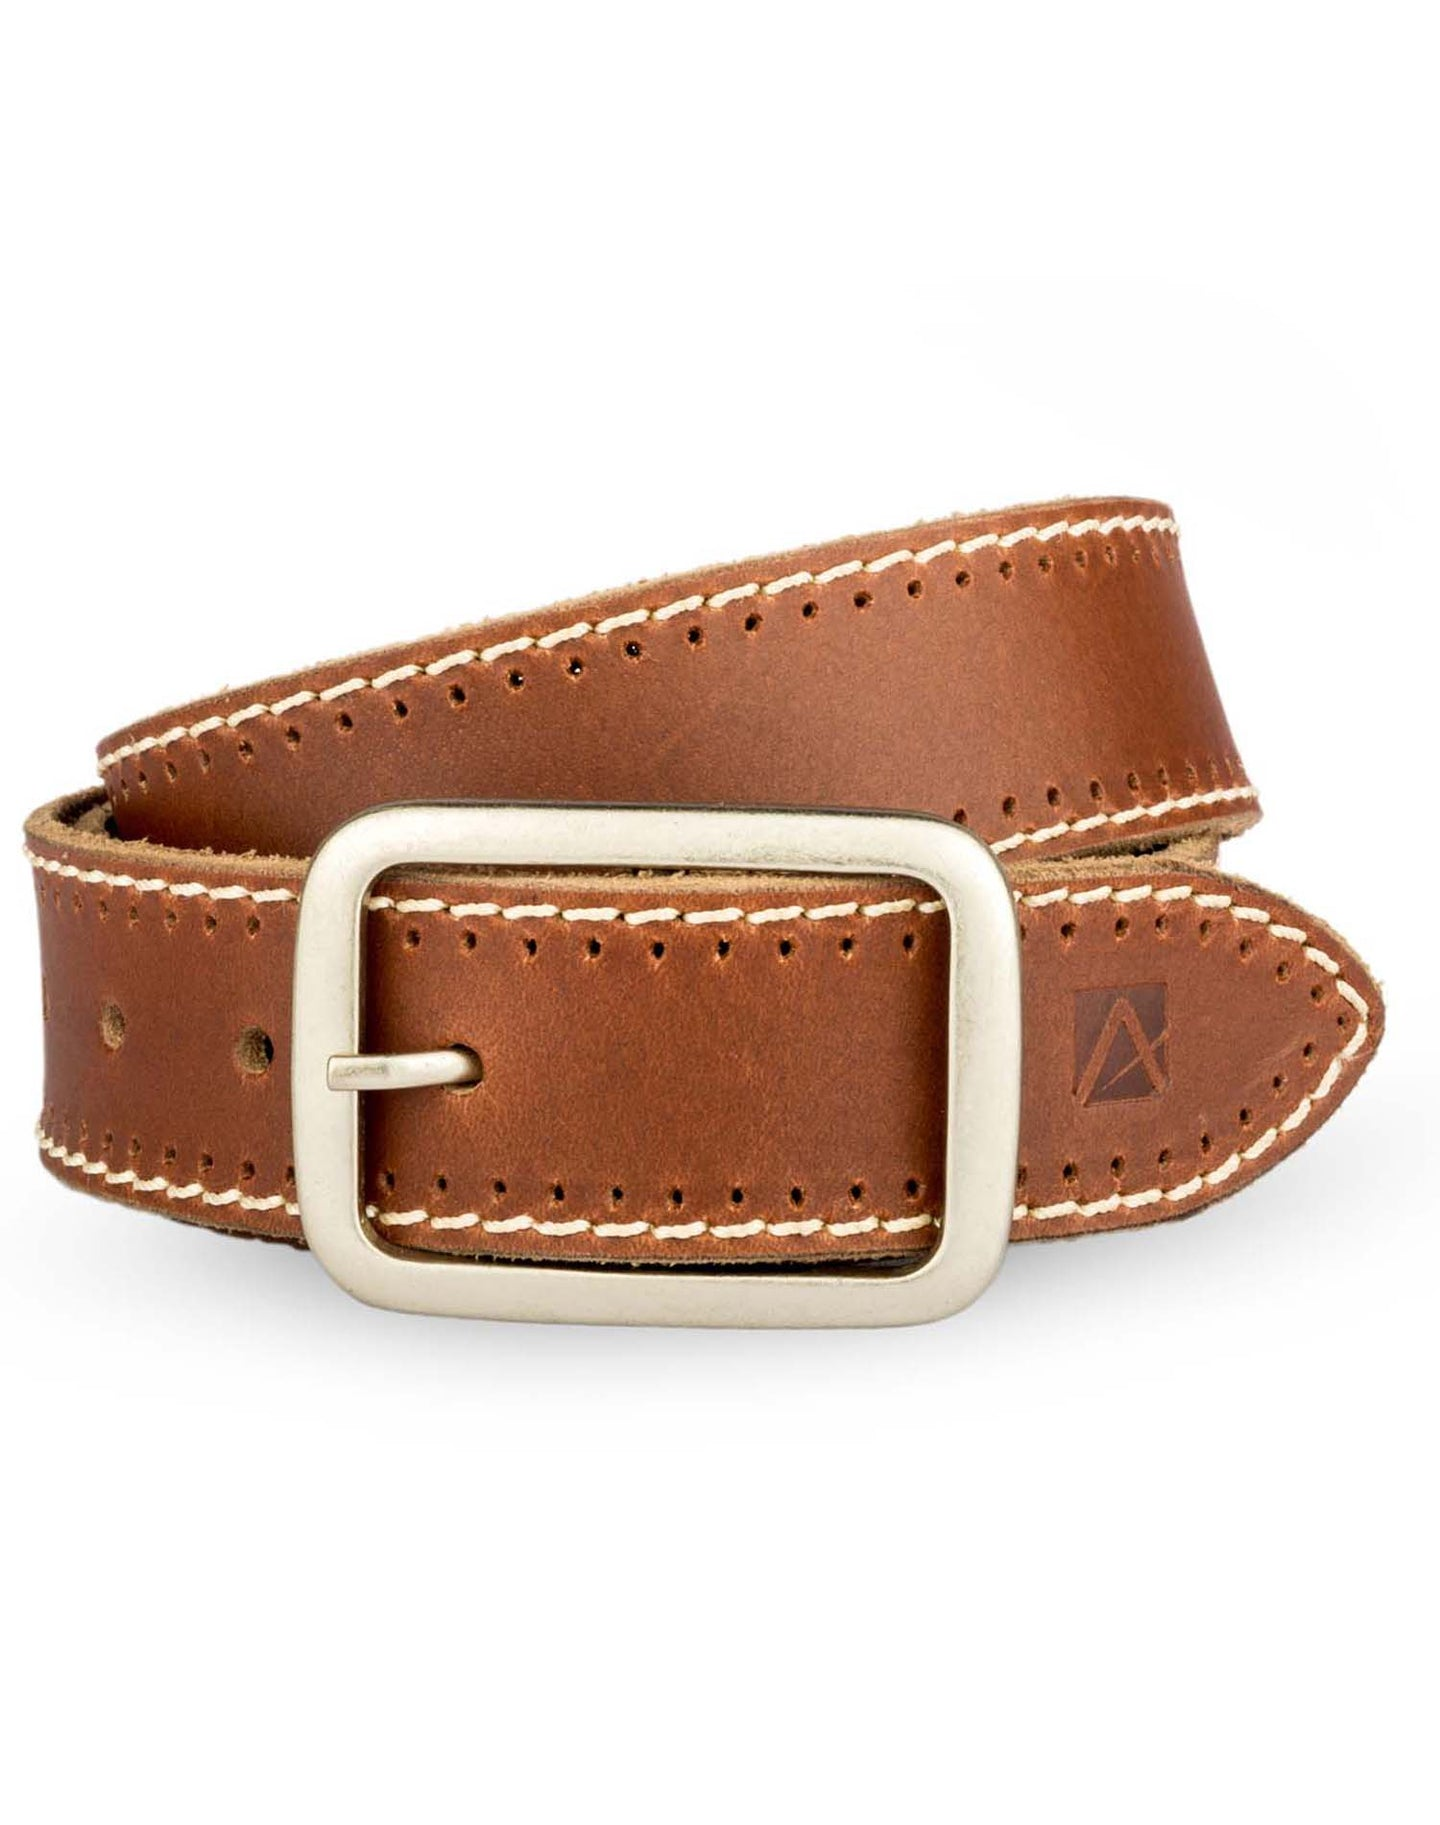 RICHCRAFT - Modern Leather Belt - ARB1017TN - ARCADIO LIFESTYLE